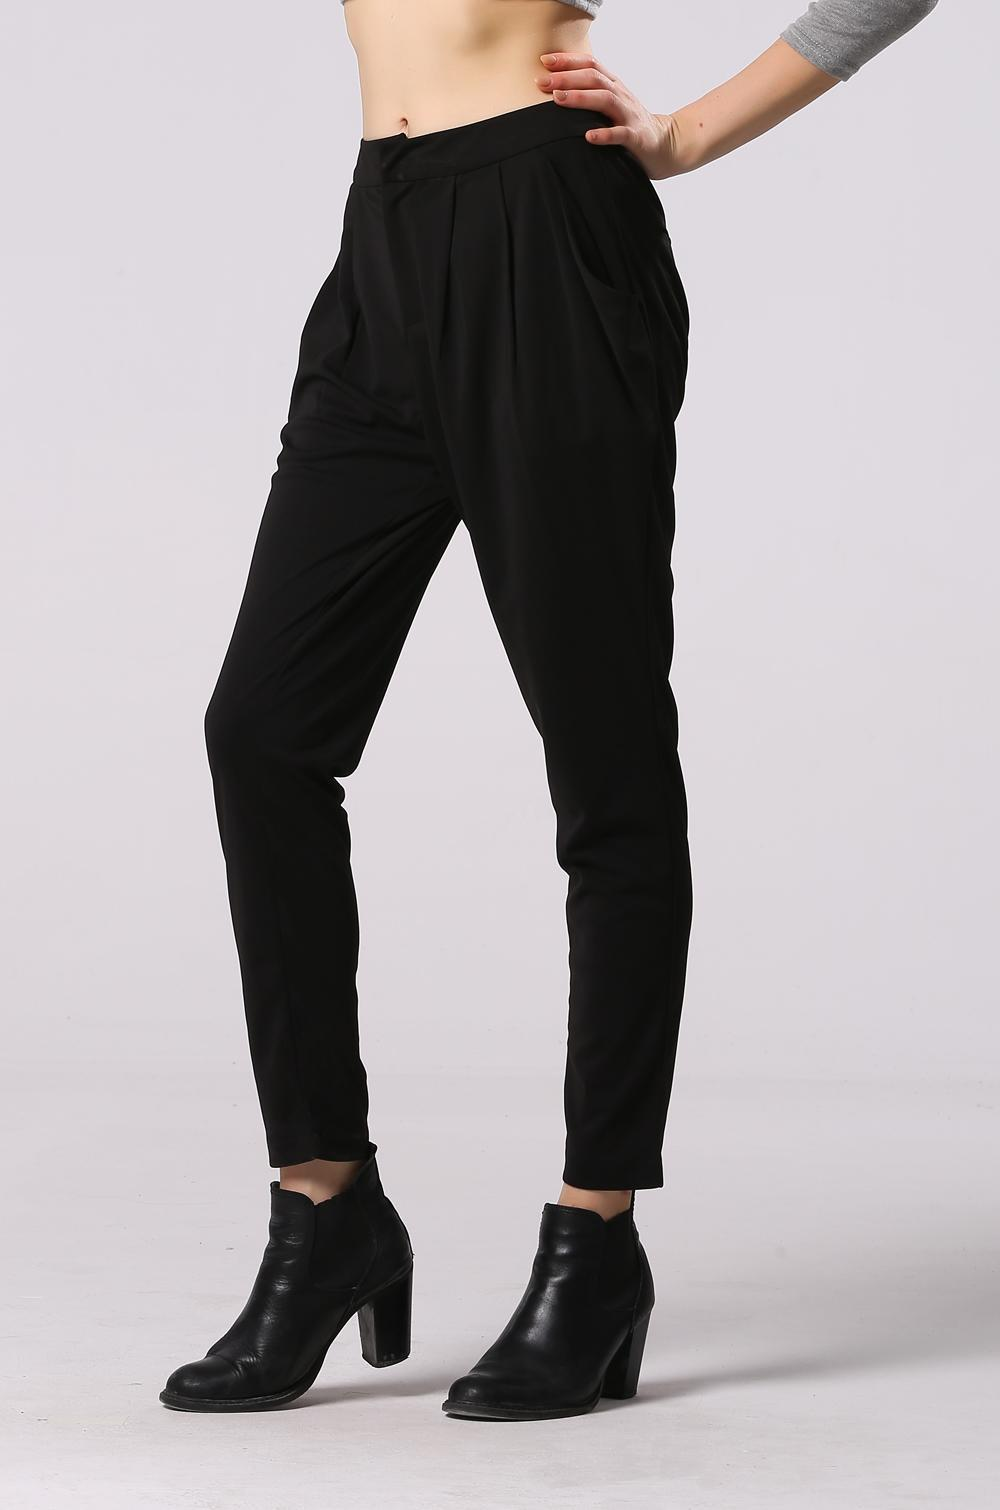 New  Details Of Striped Casual Women39s Harem Pants Plus Size Available